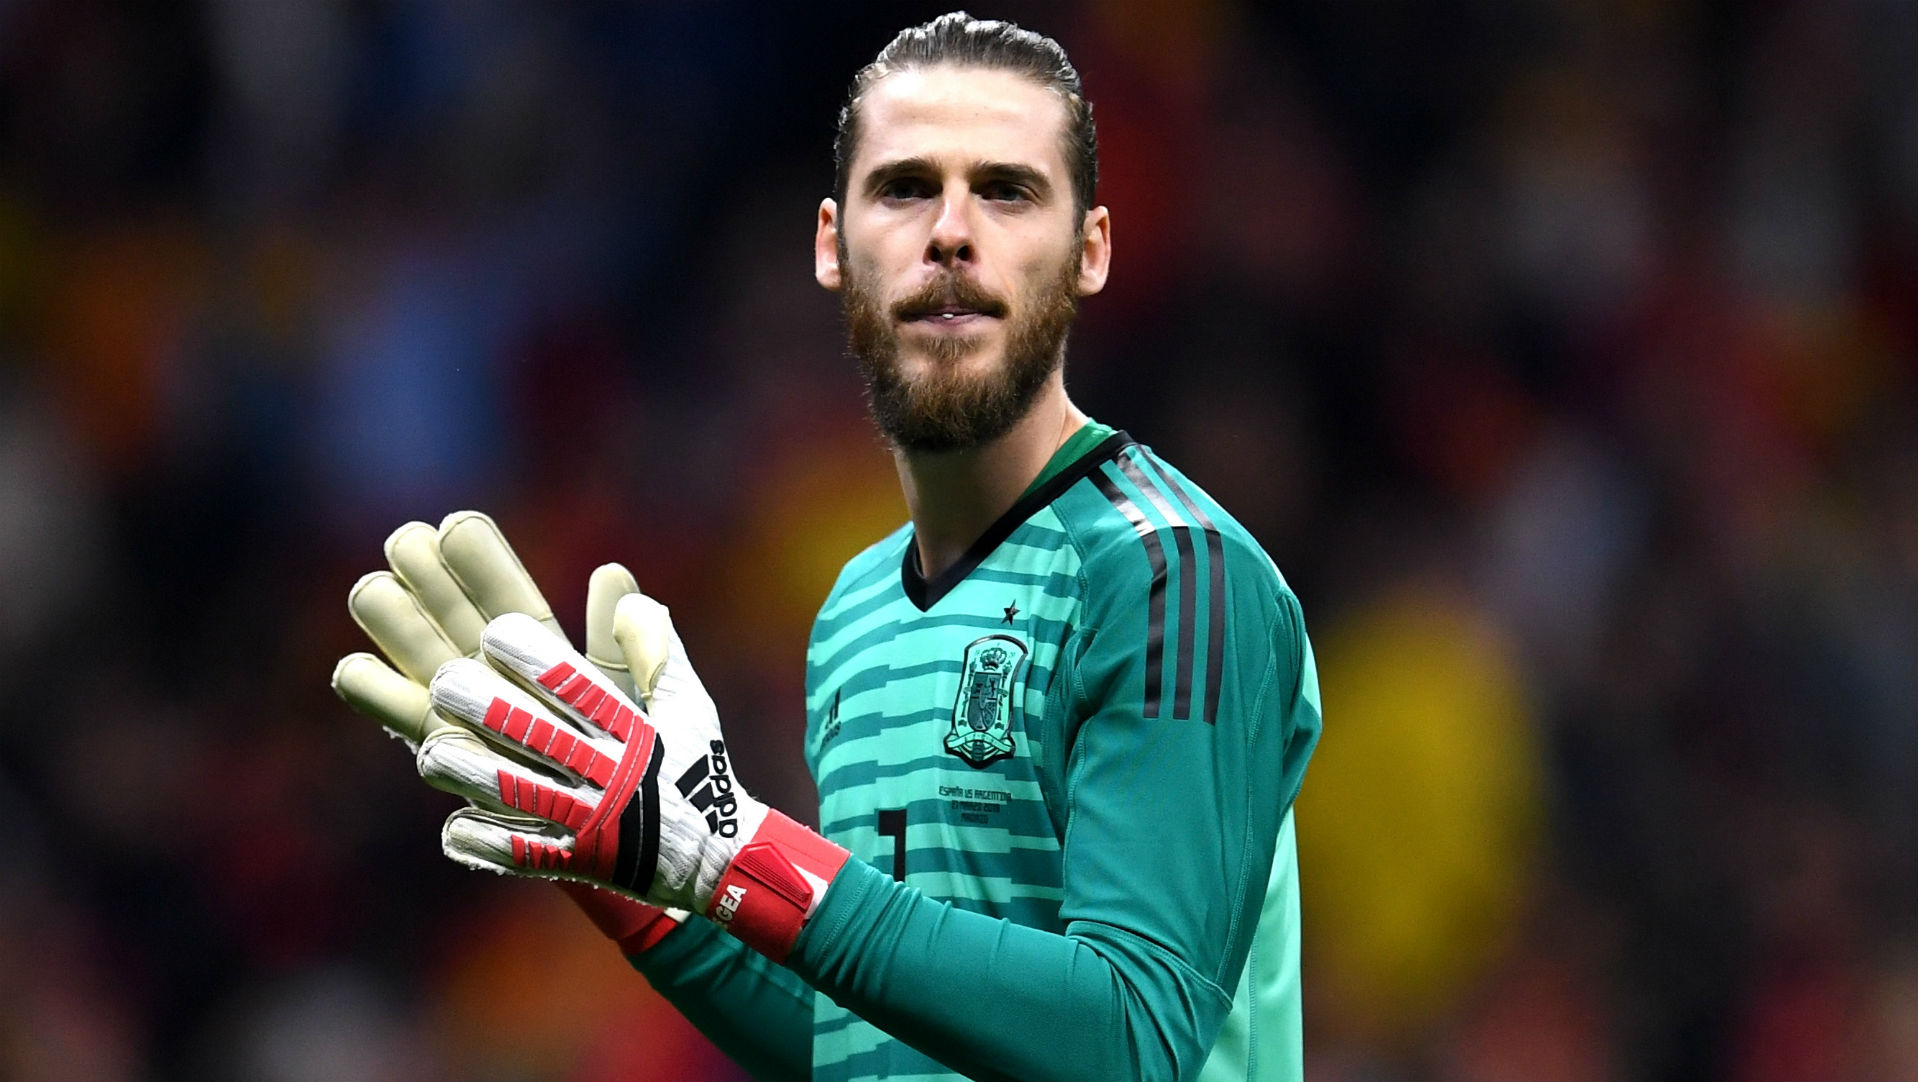 De Gea 'well studied' for World Cup battle with Ronaldo